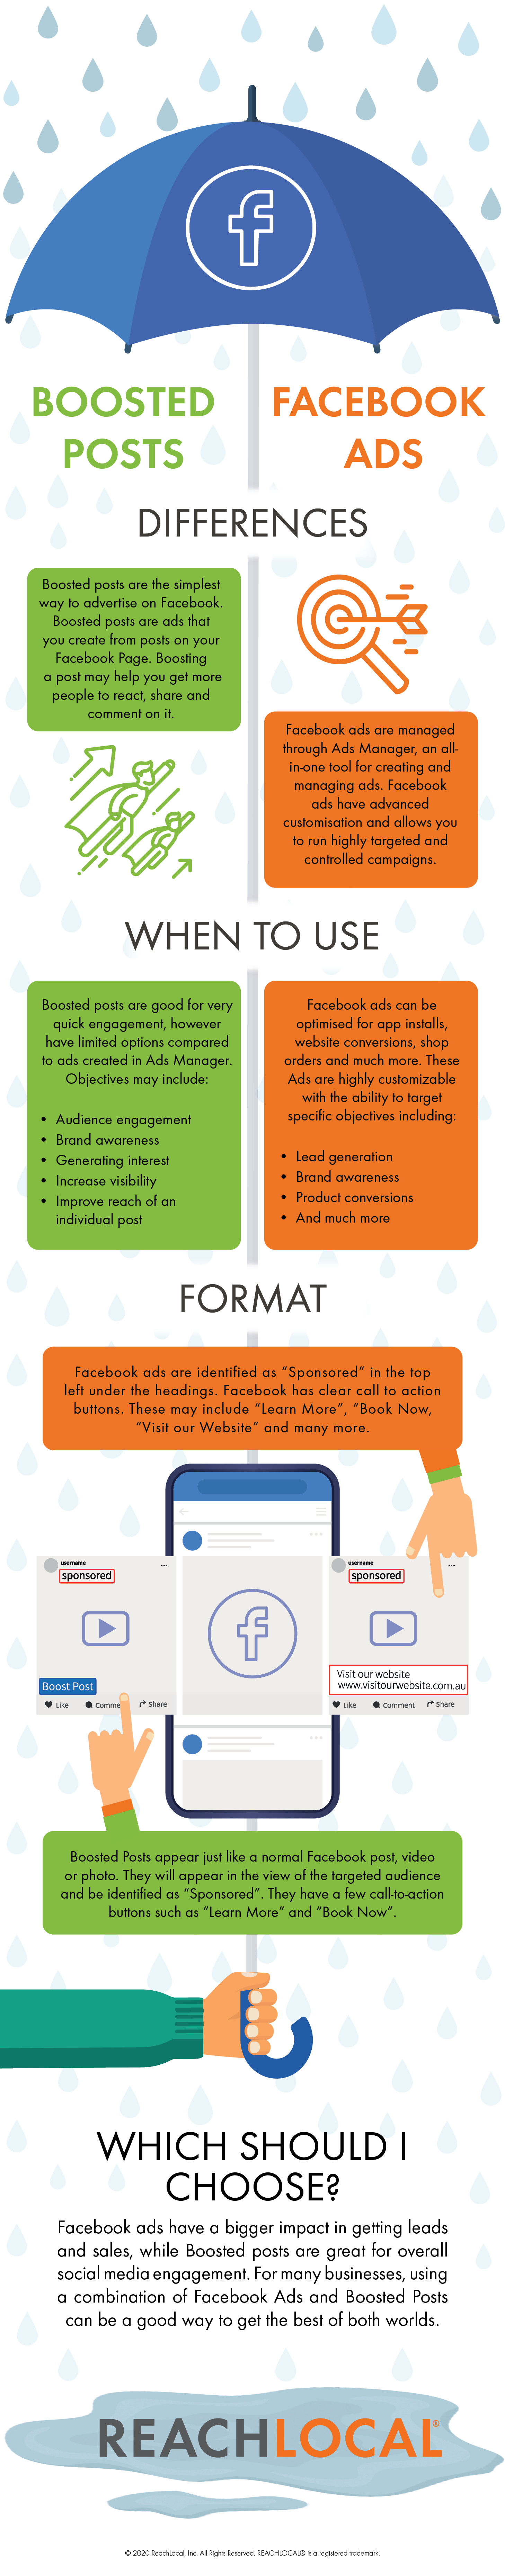 Differences Between Boosted Posts and Facebook Ads